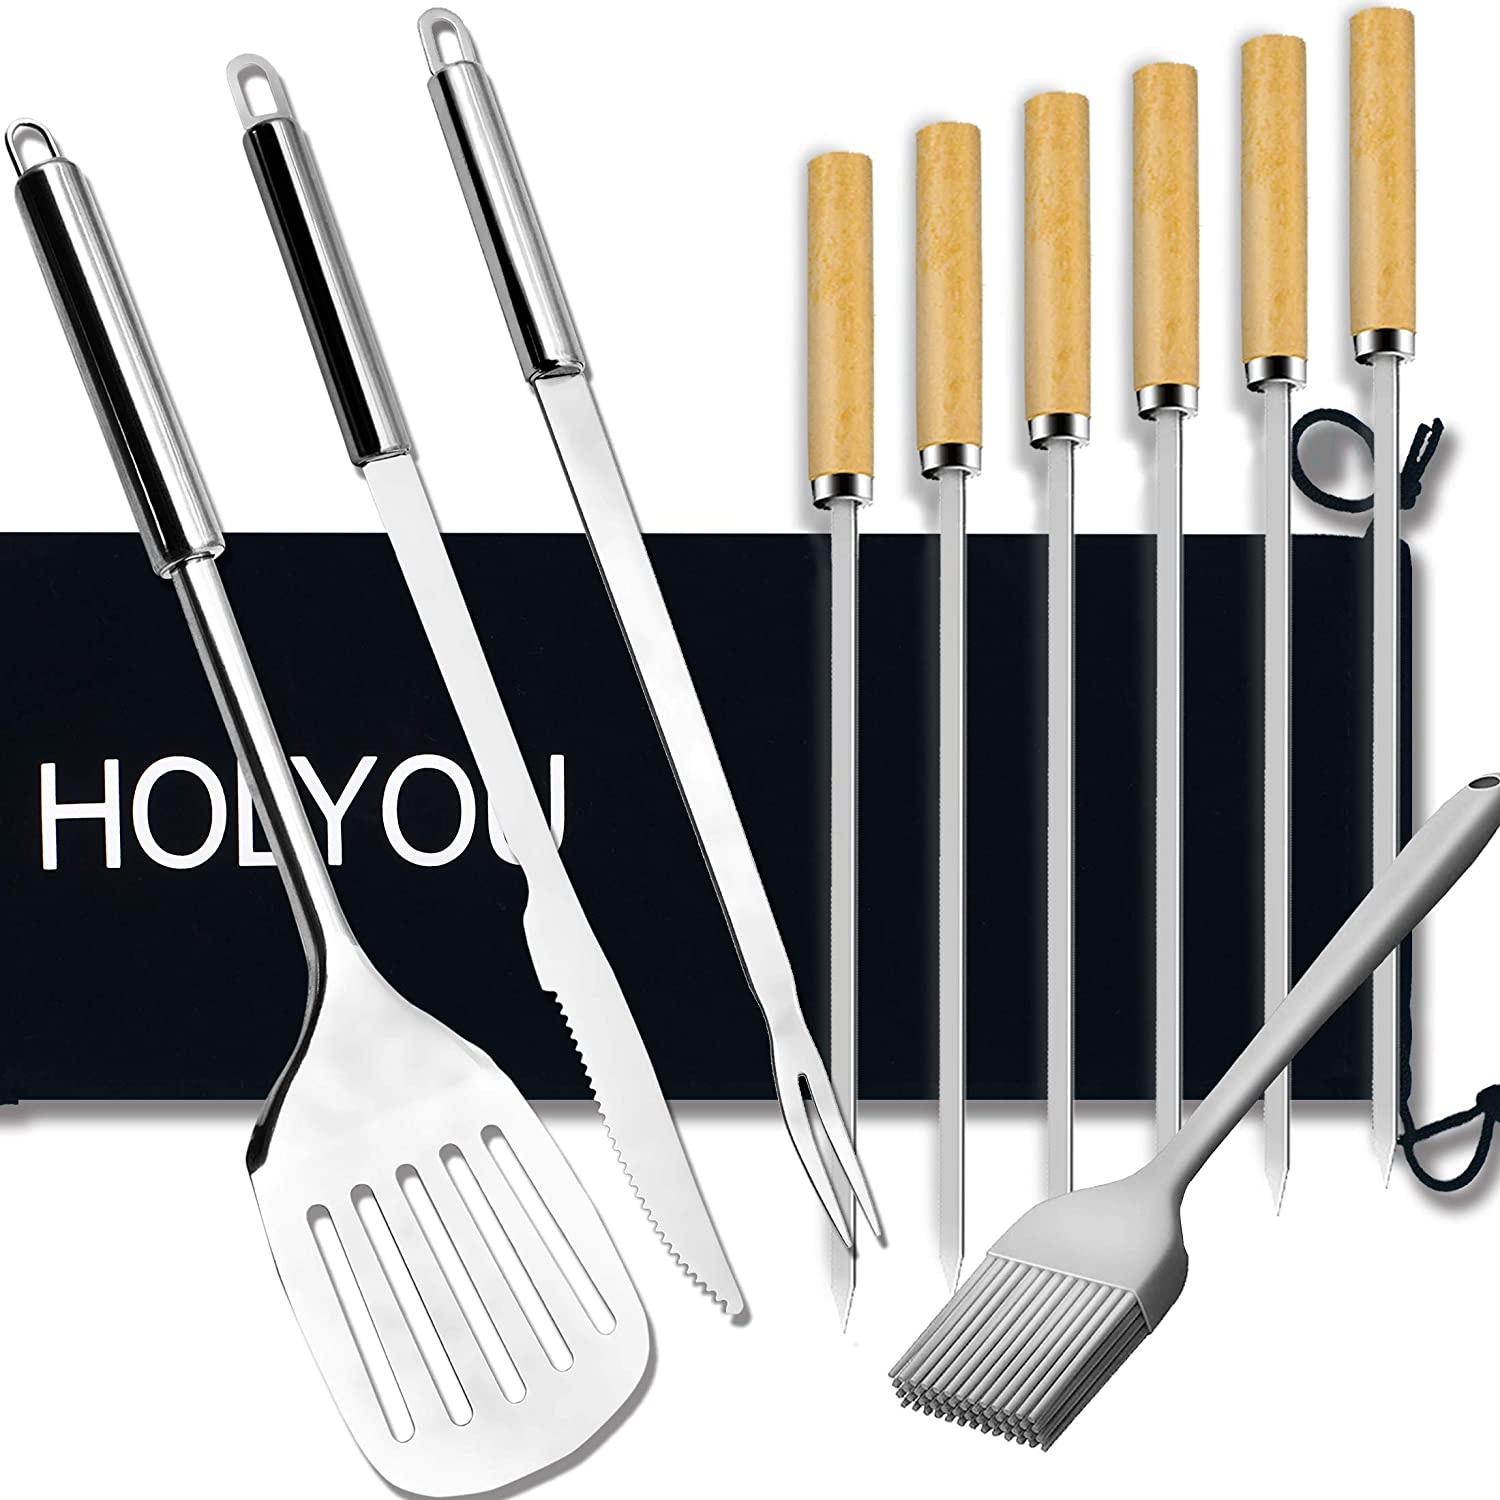 HOLYOU Grilling Accessories, BBQ Tools Set, Stainless Steel Grill Kit for  Barbecue,Outdoor Camping, Kitchen,Perfect Grill Gift -8pcs